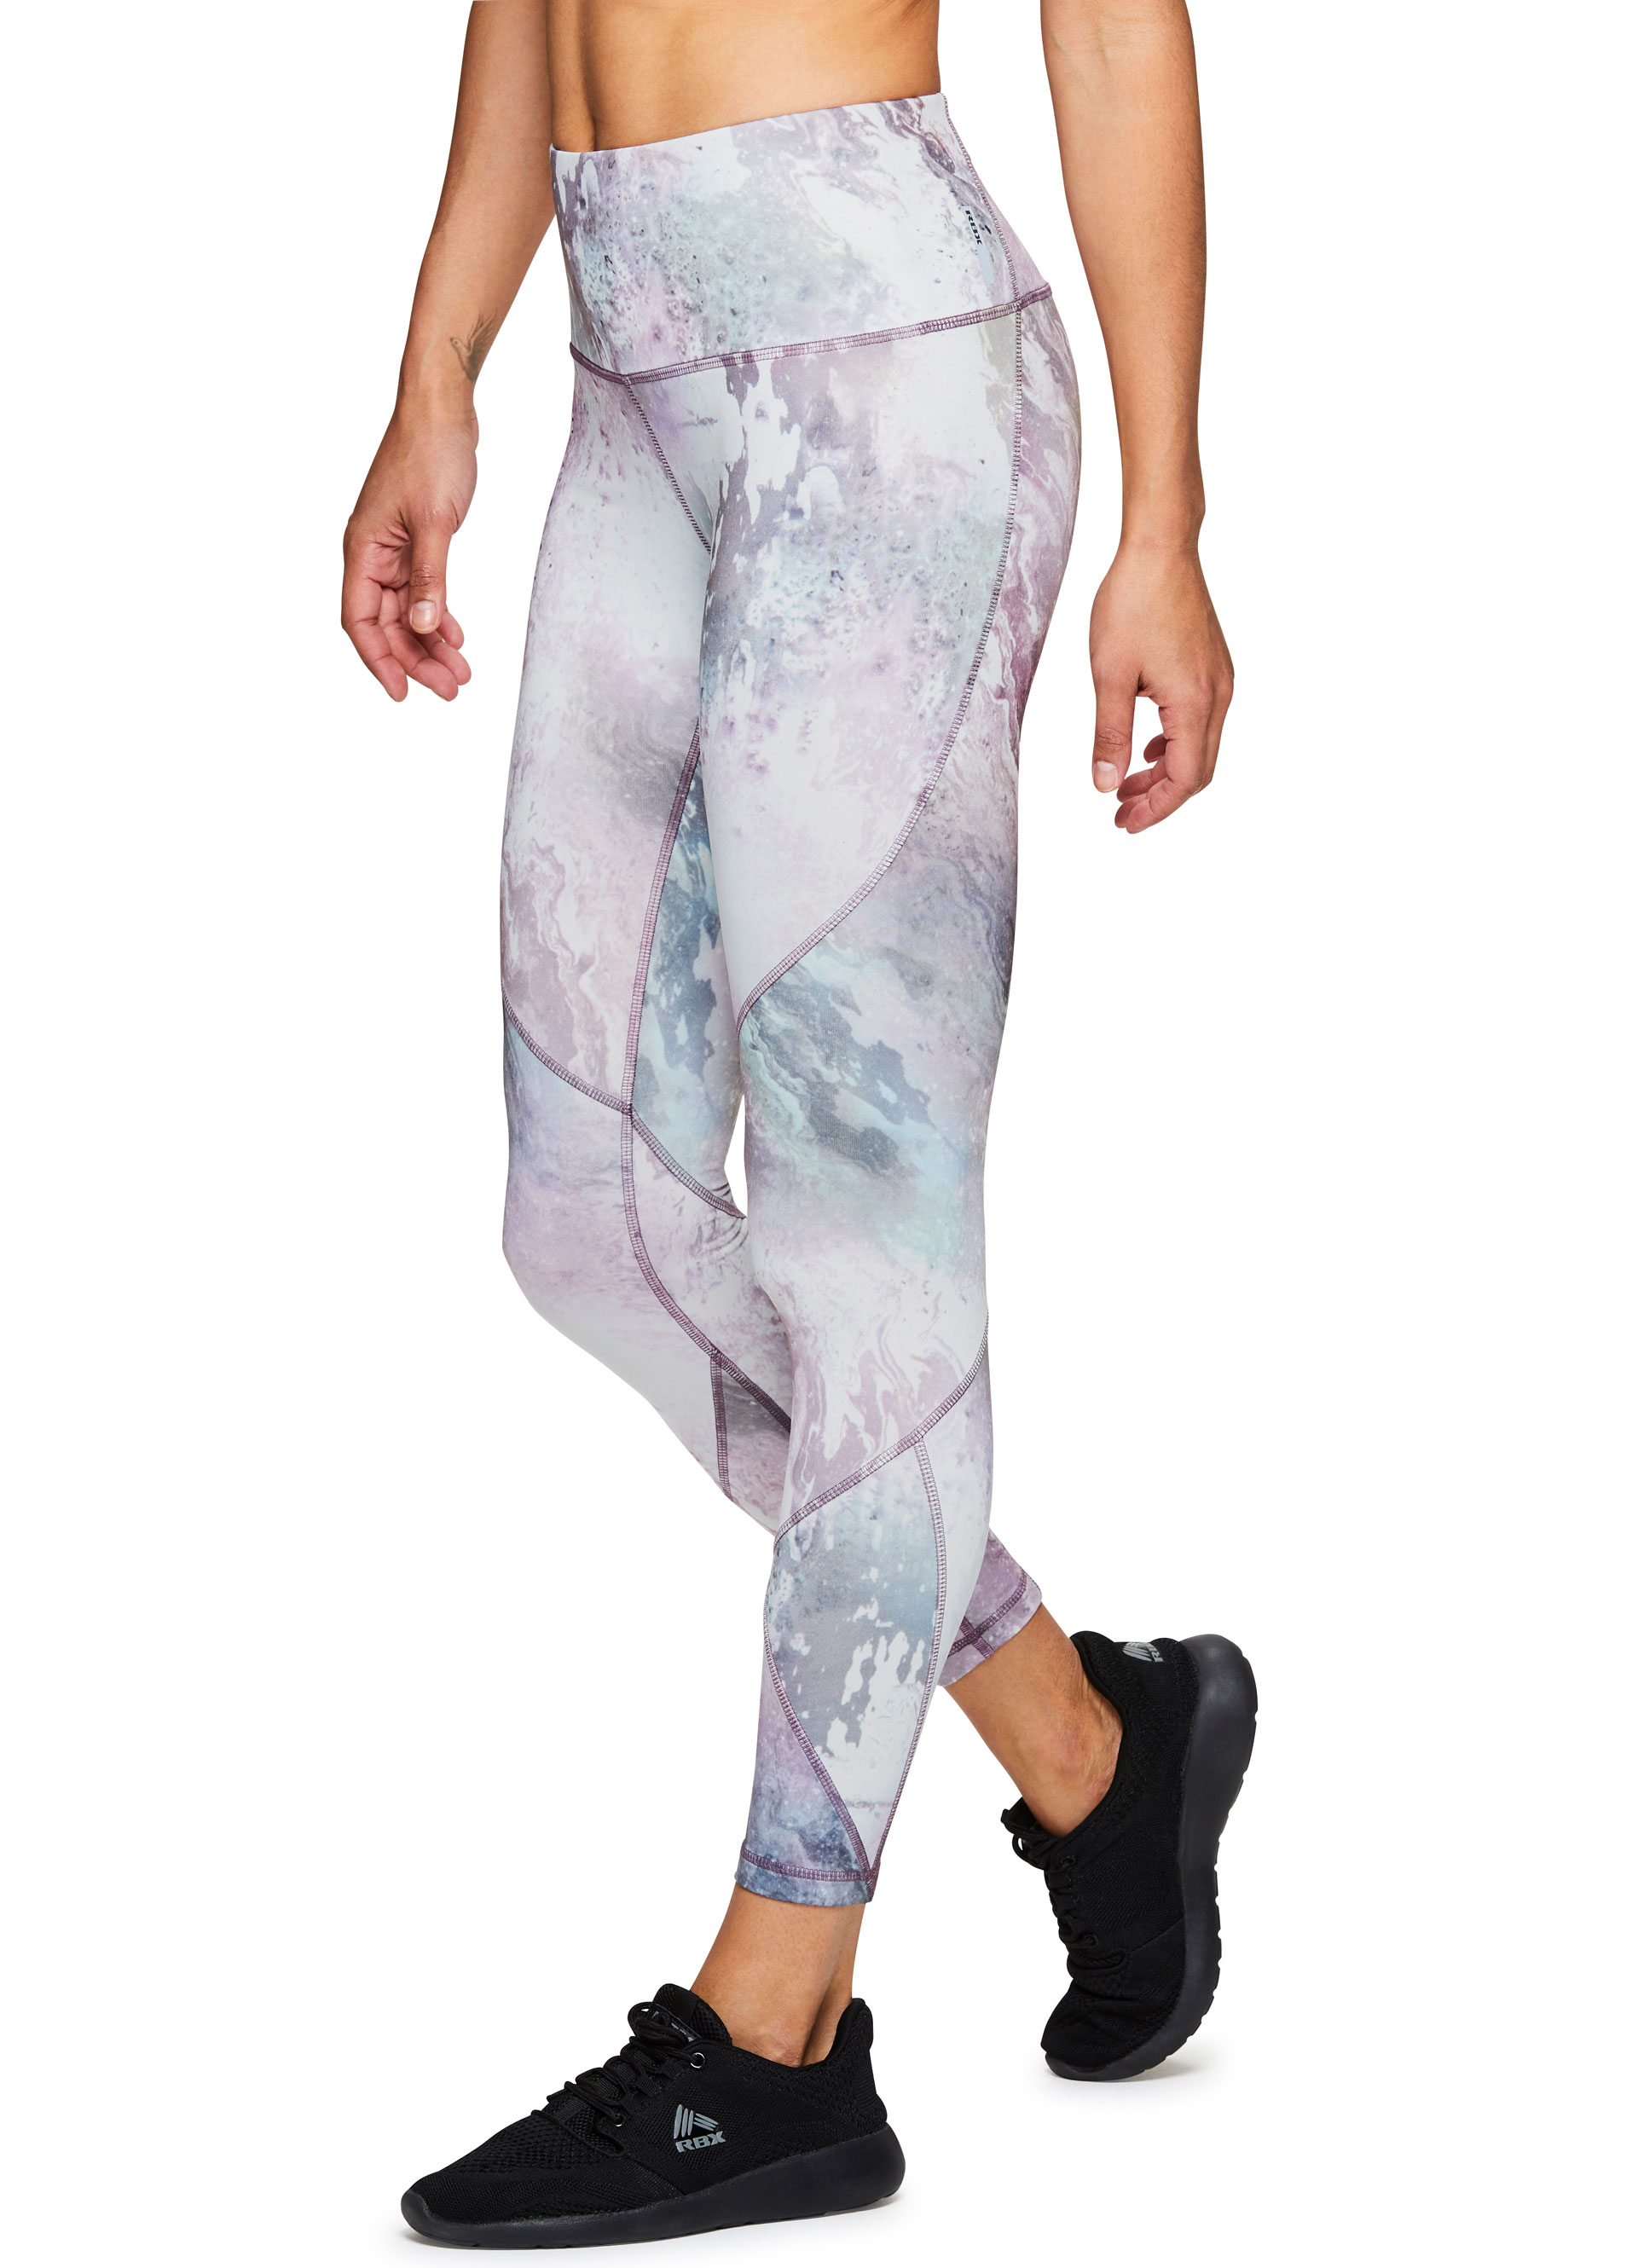 9d479eed3650a RBX Active Women's Printed Running Workout Yoga Leggings | eBay